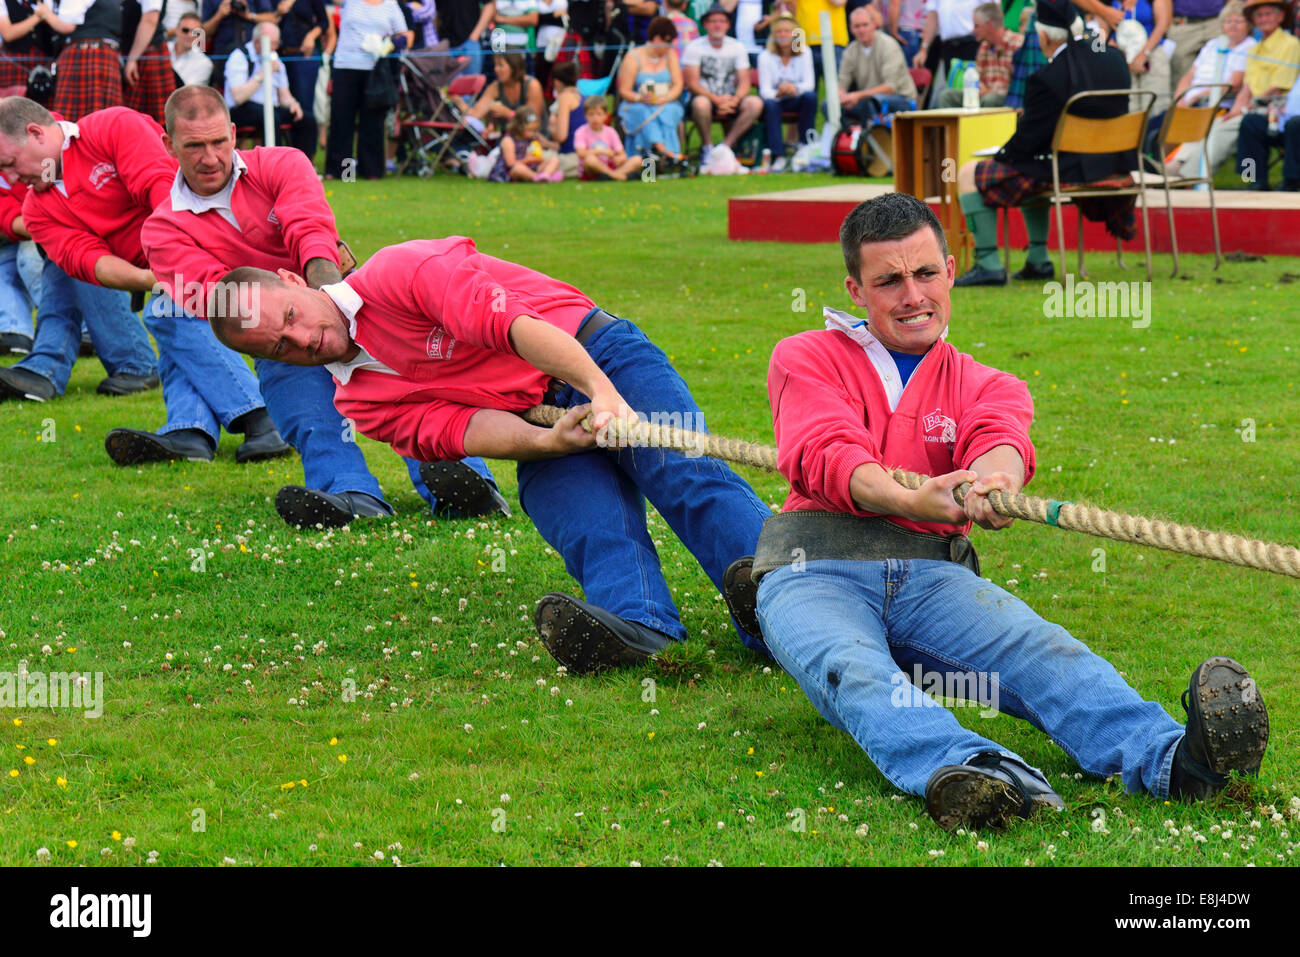 Tug-of-War, one of the disciplines at the Highland Games, Dufftown, Moray, Highlands, Scotland, United Kingdom - Stock Image